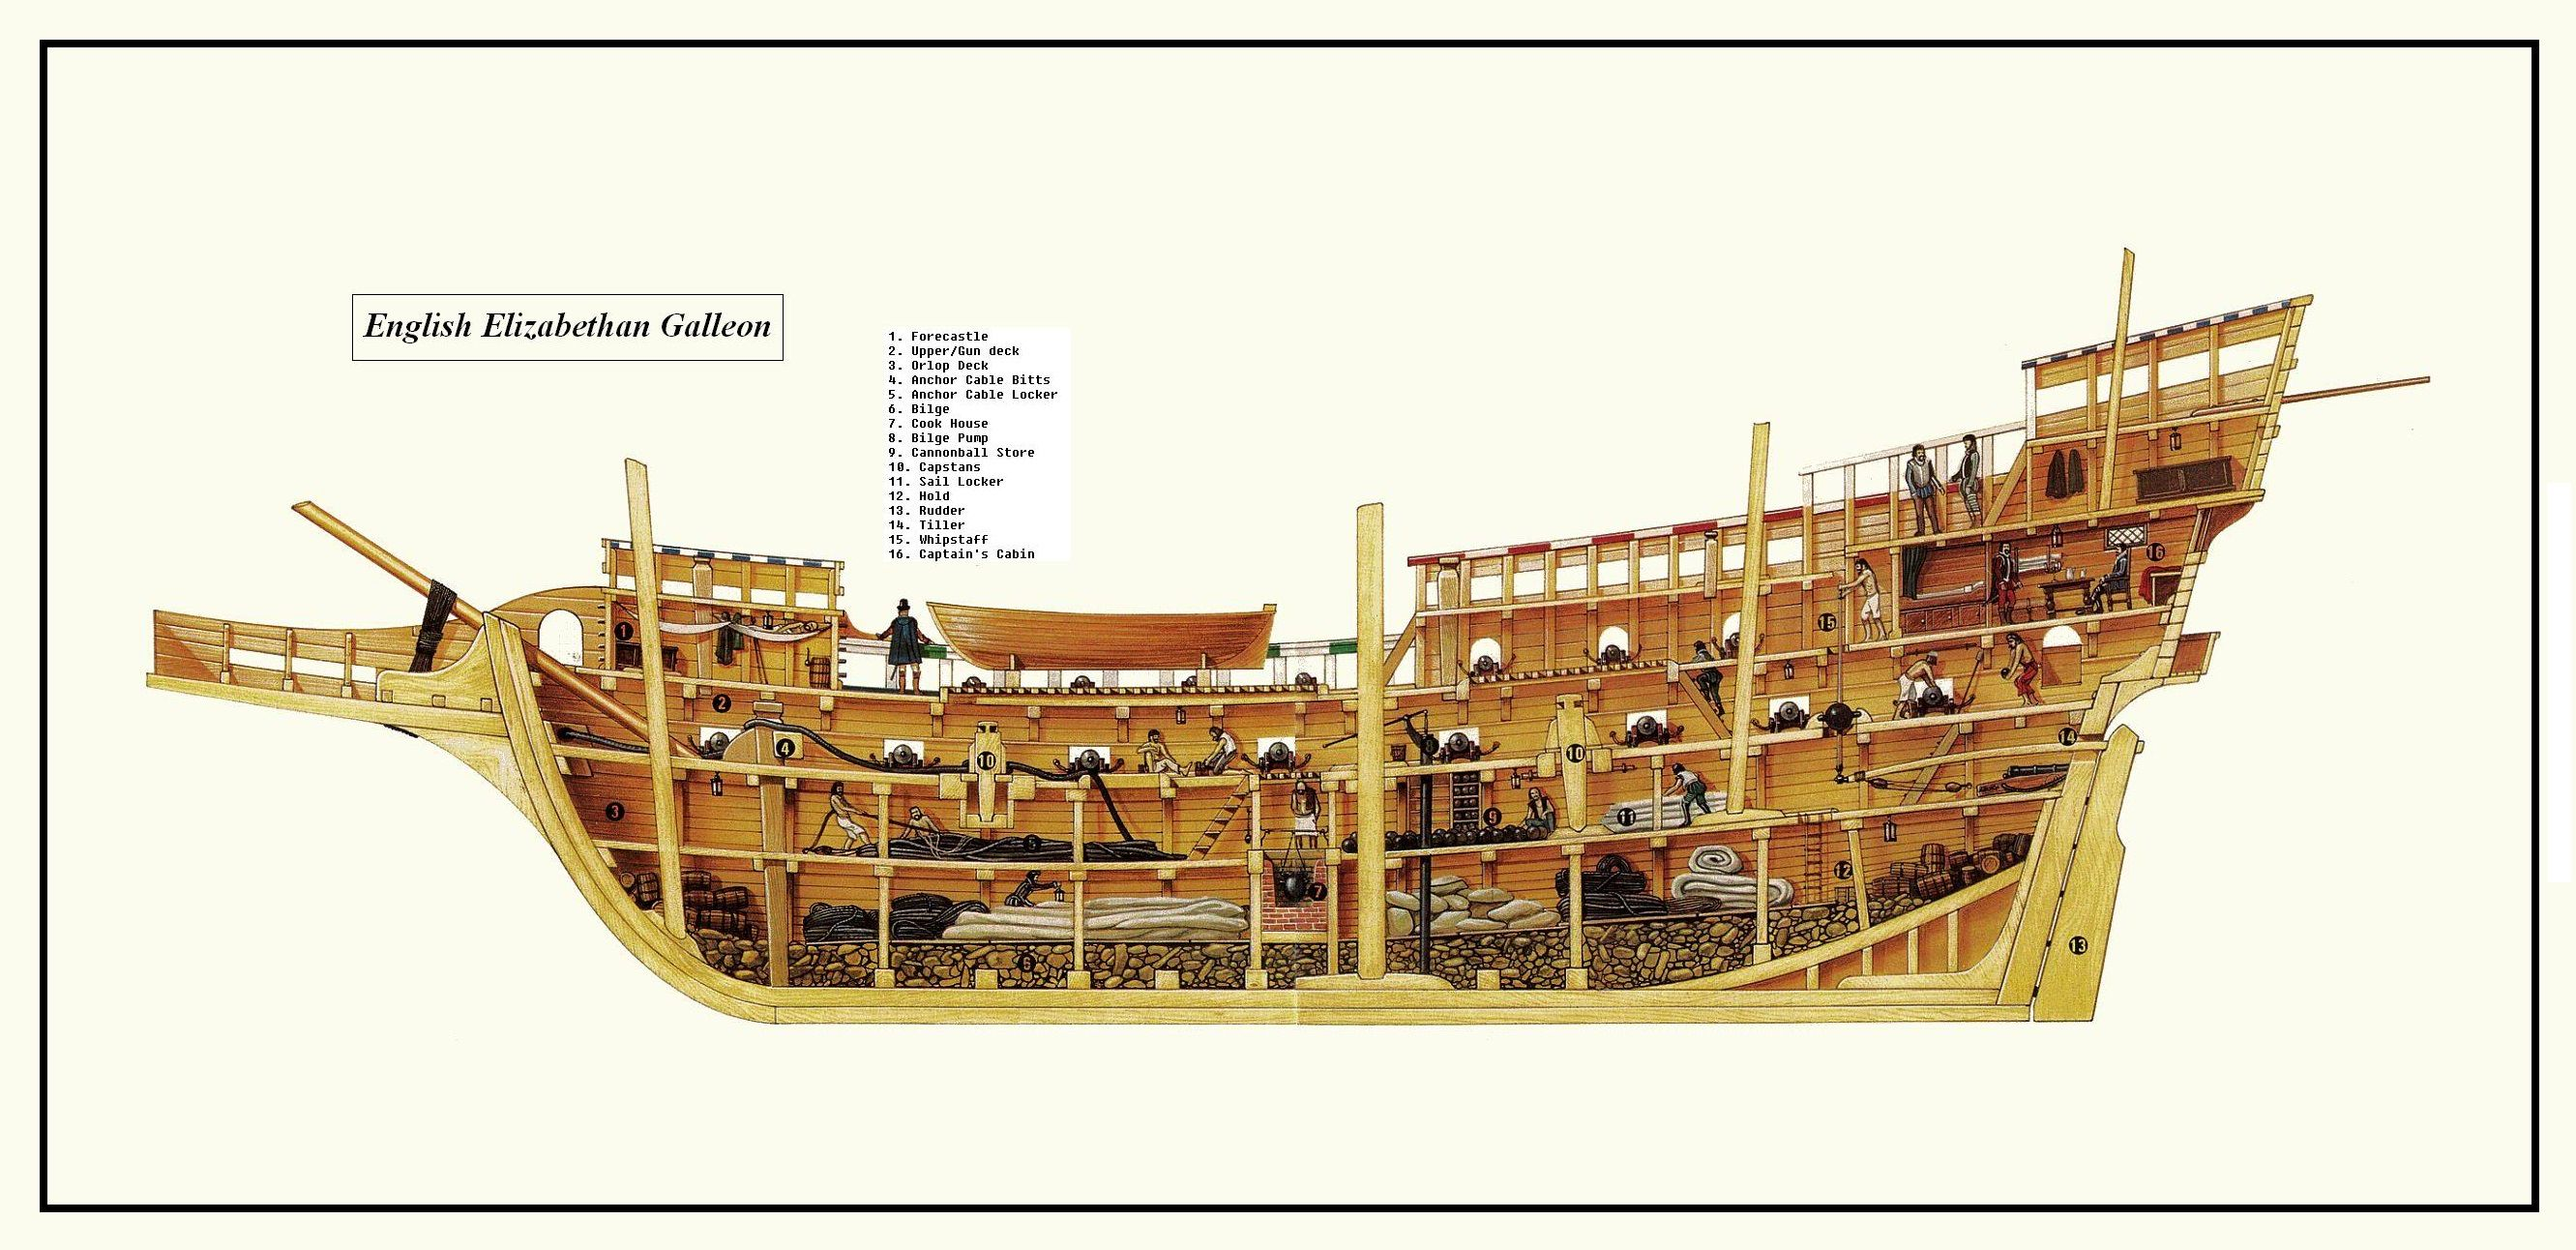 pirate ship inside diagram wiring colour codes ford radio wire harness color cross section of elizabethan galleon 331 vessels  boats